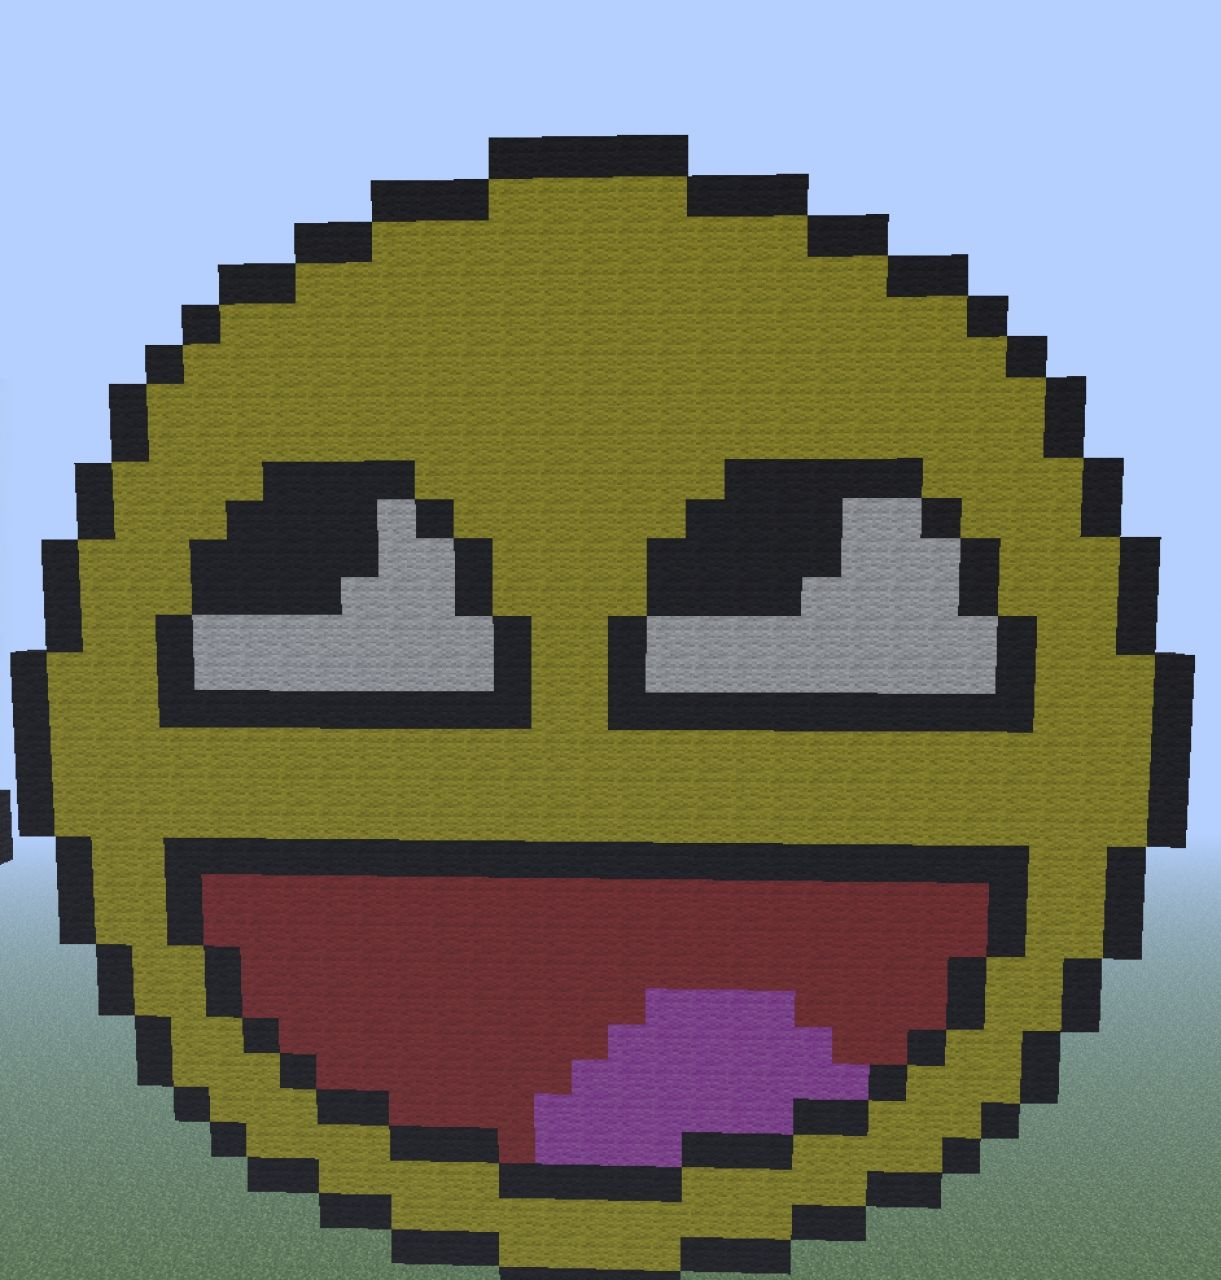 Minecraft Characters Faces How To Make Epic Face Minecraft Project